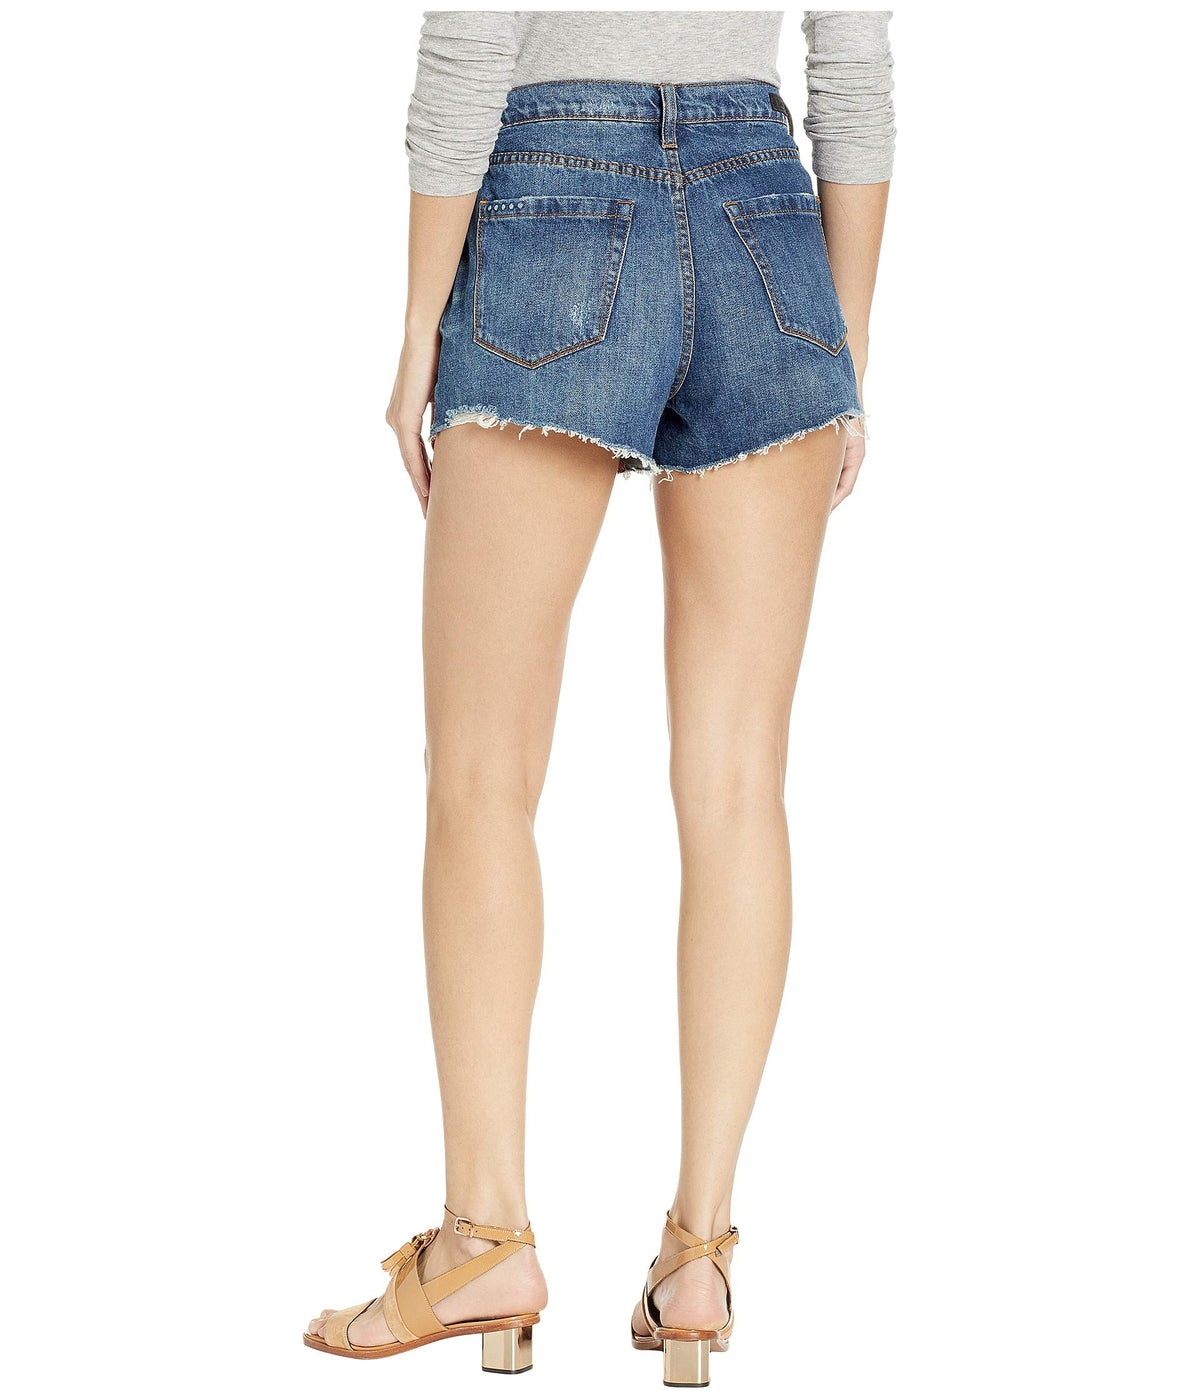 The Barrow High-Rise Distressed Shorts in After Shock